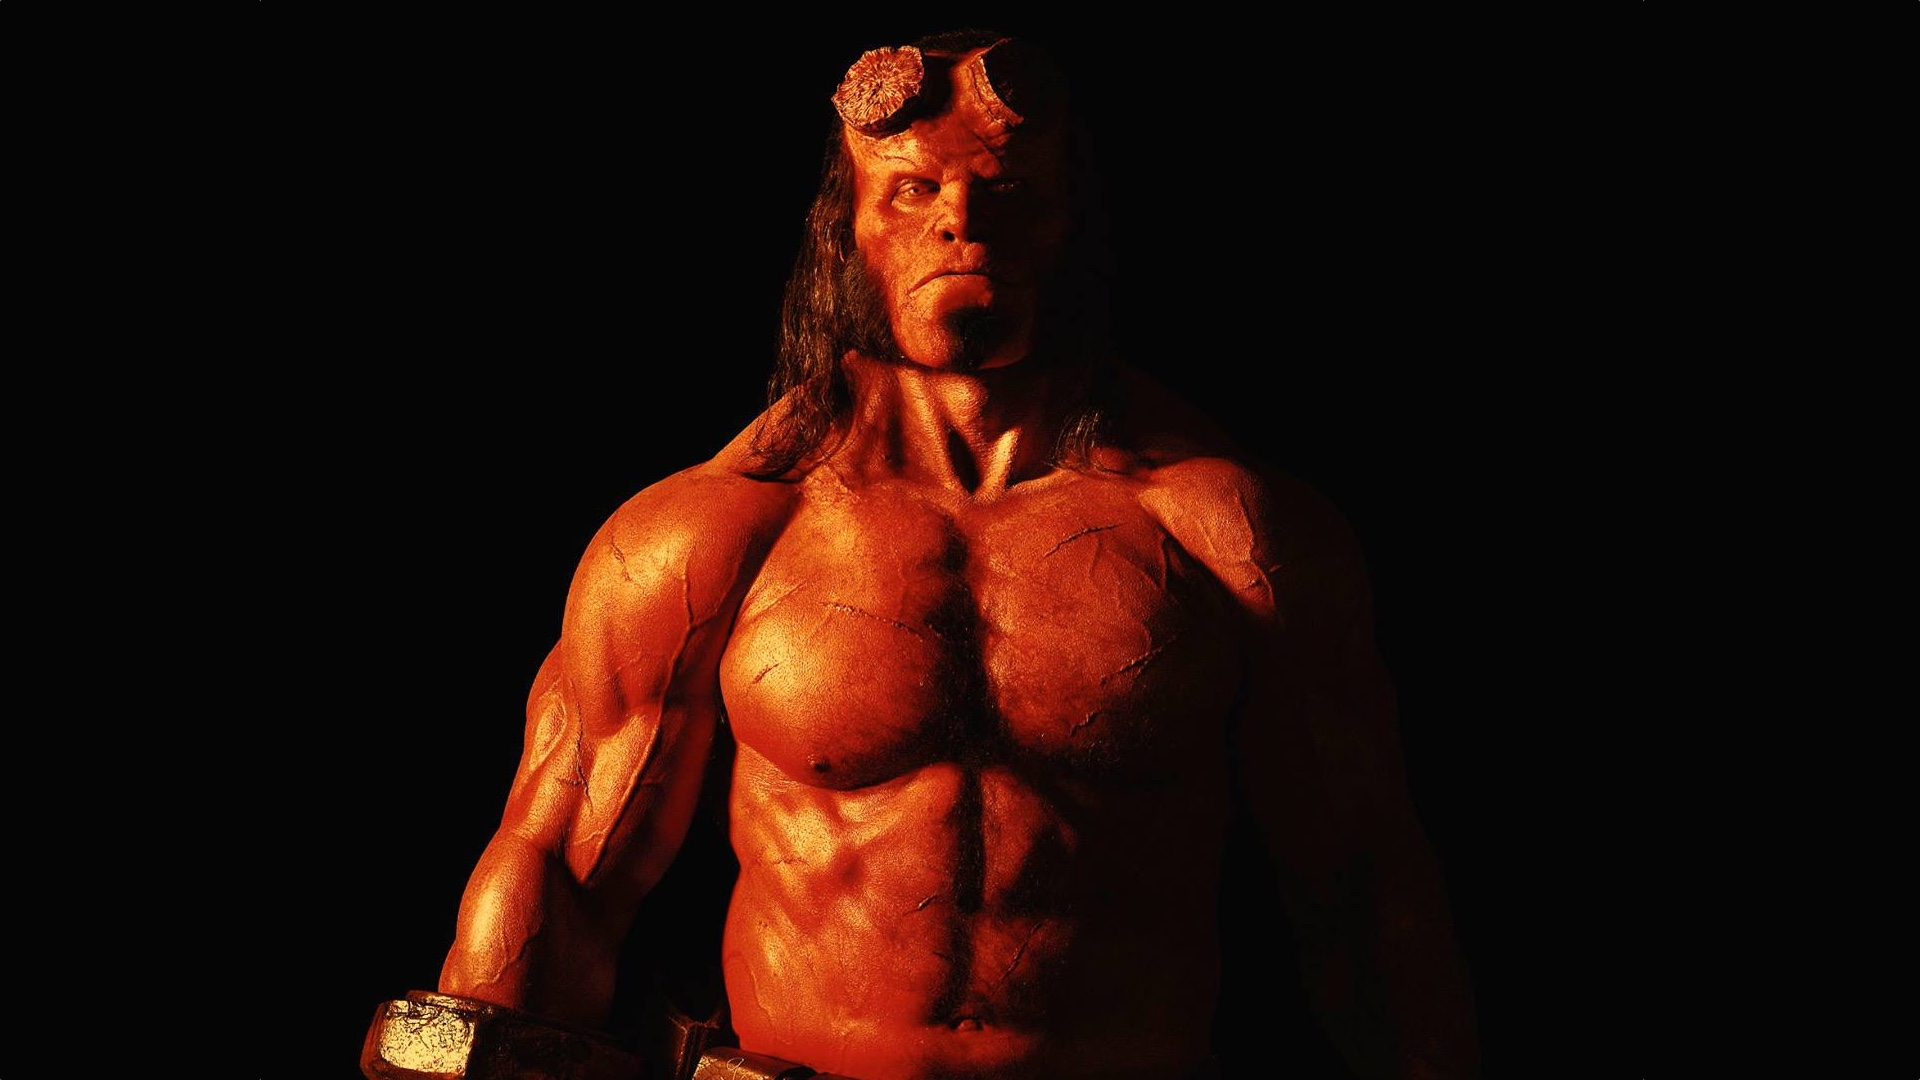 Hellboy Creator Mike Mignola Talks About The New Movie And Says It